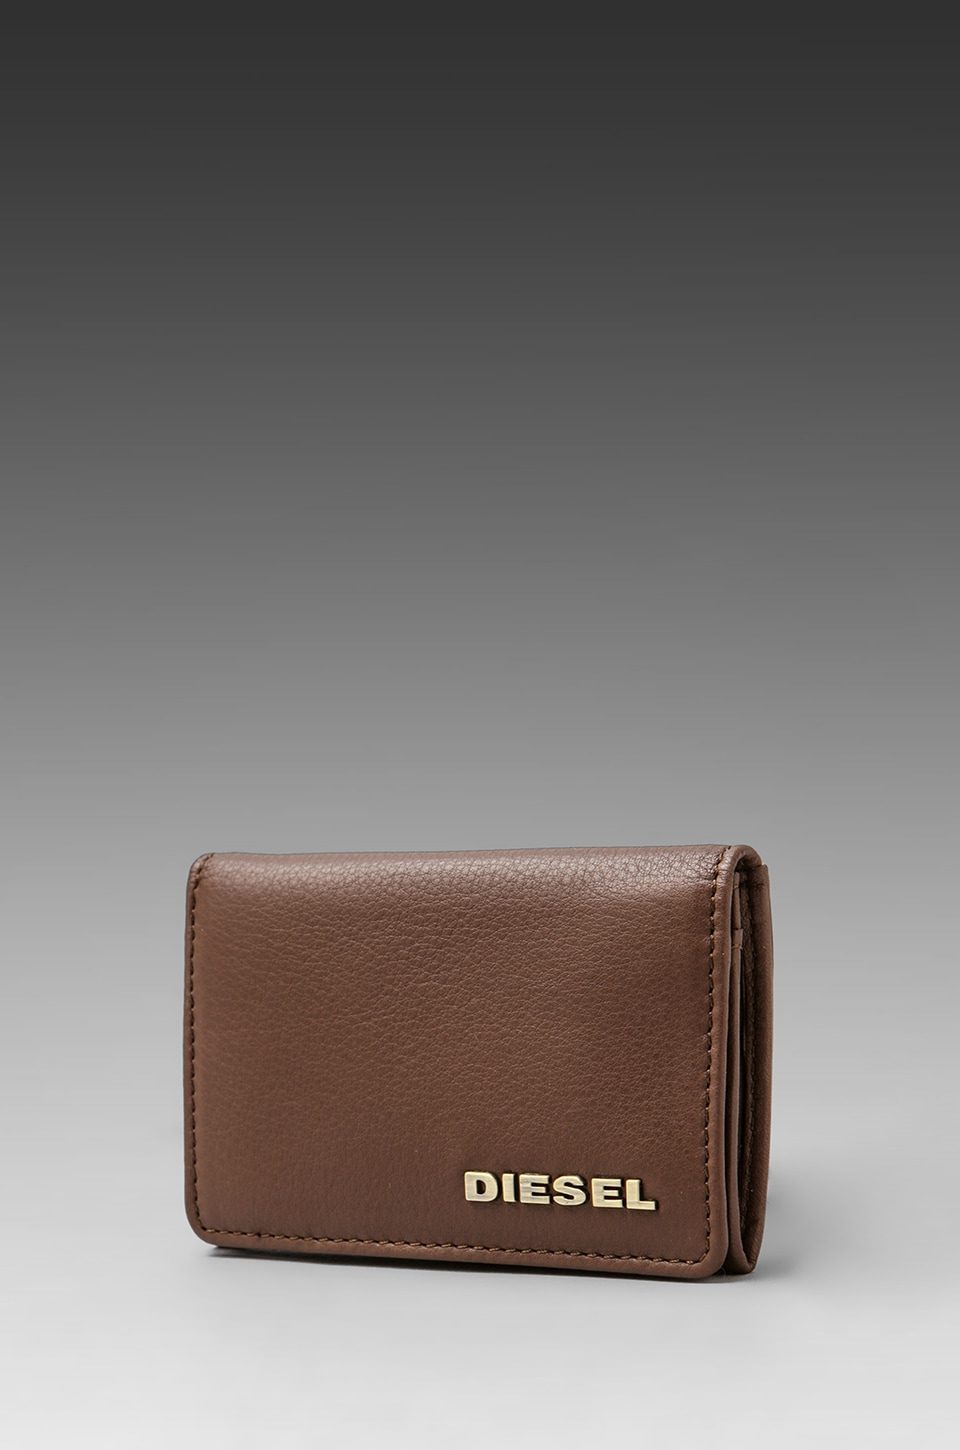 Diesel Jem Wallets Marley in Shopping Bag